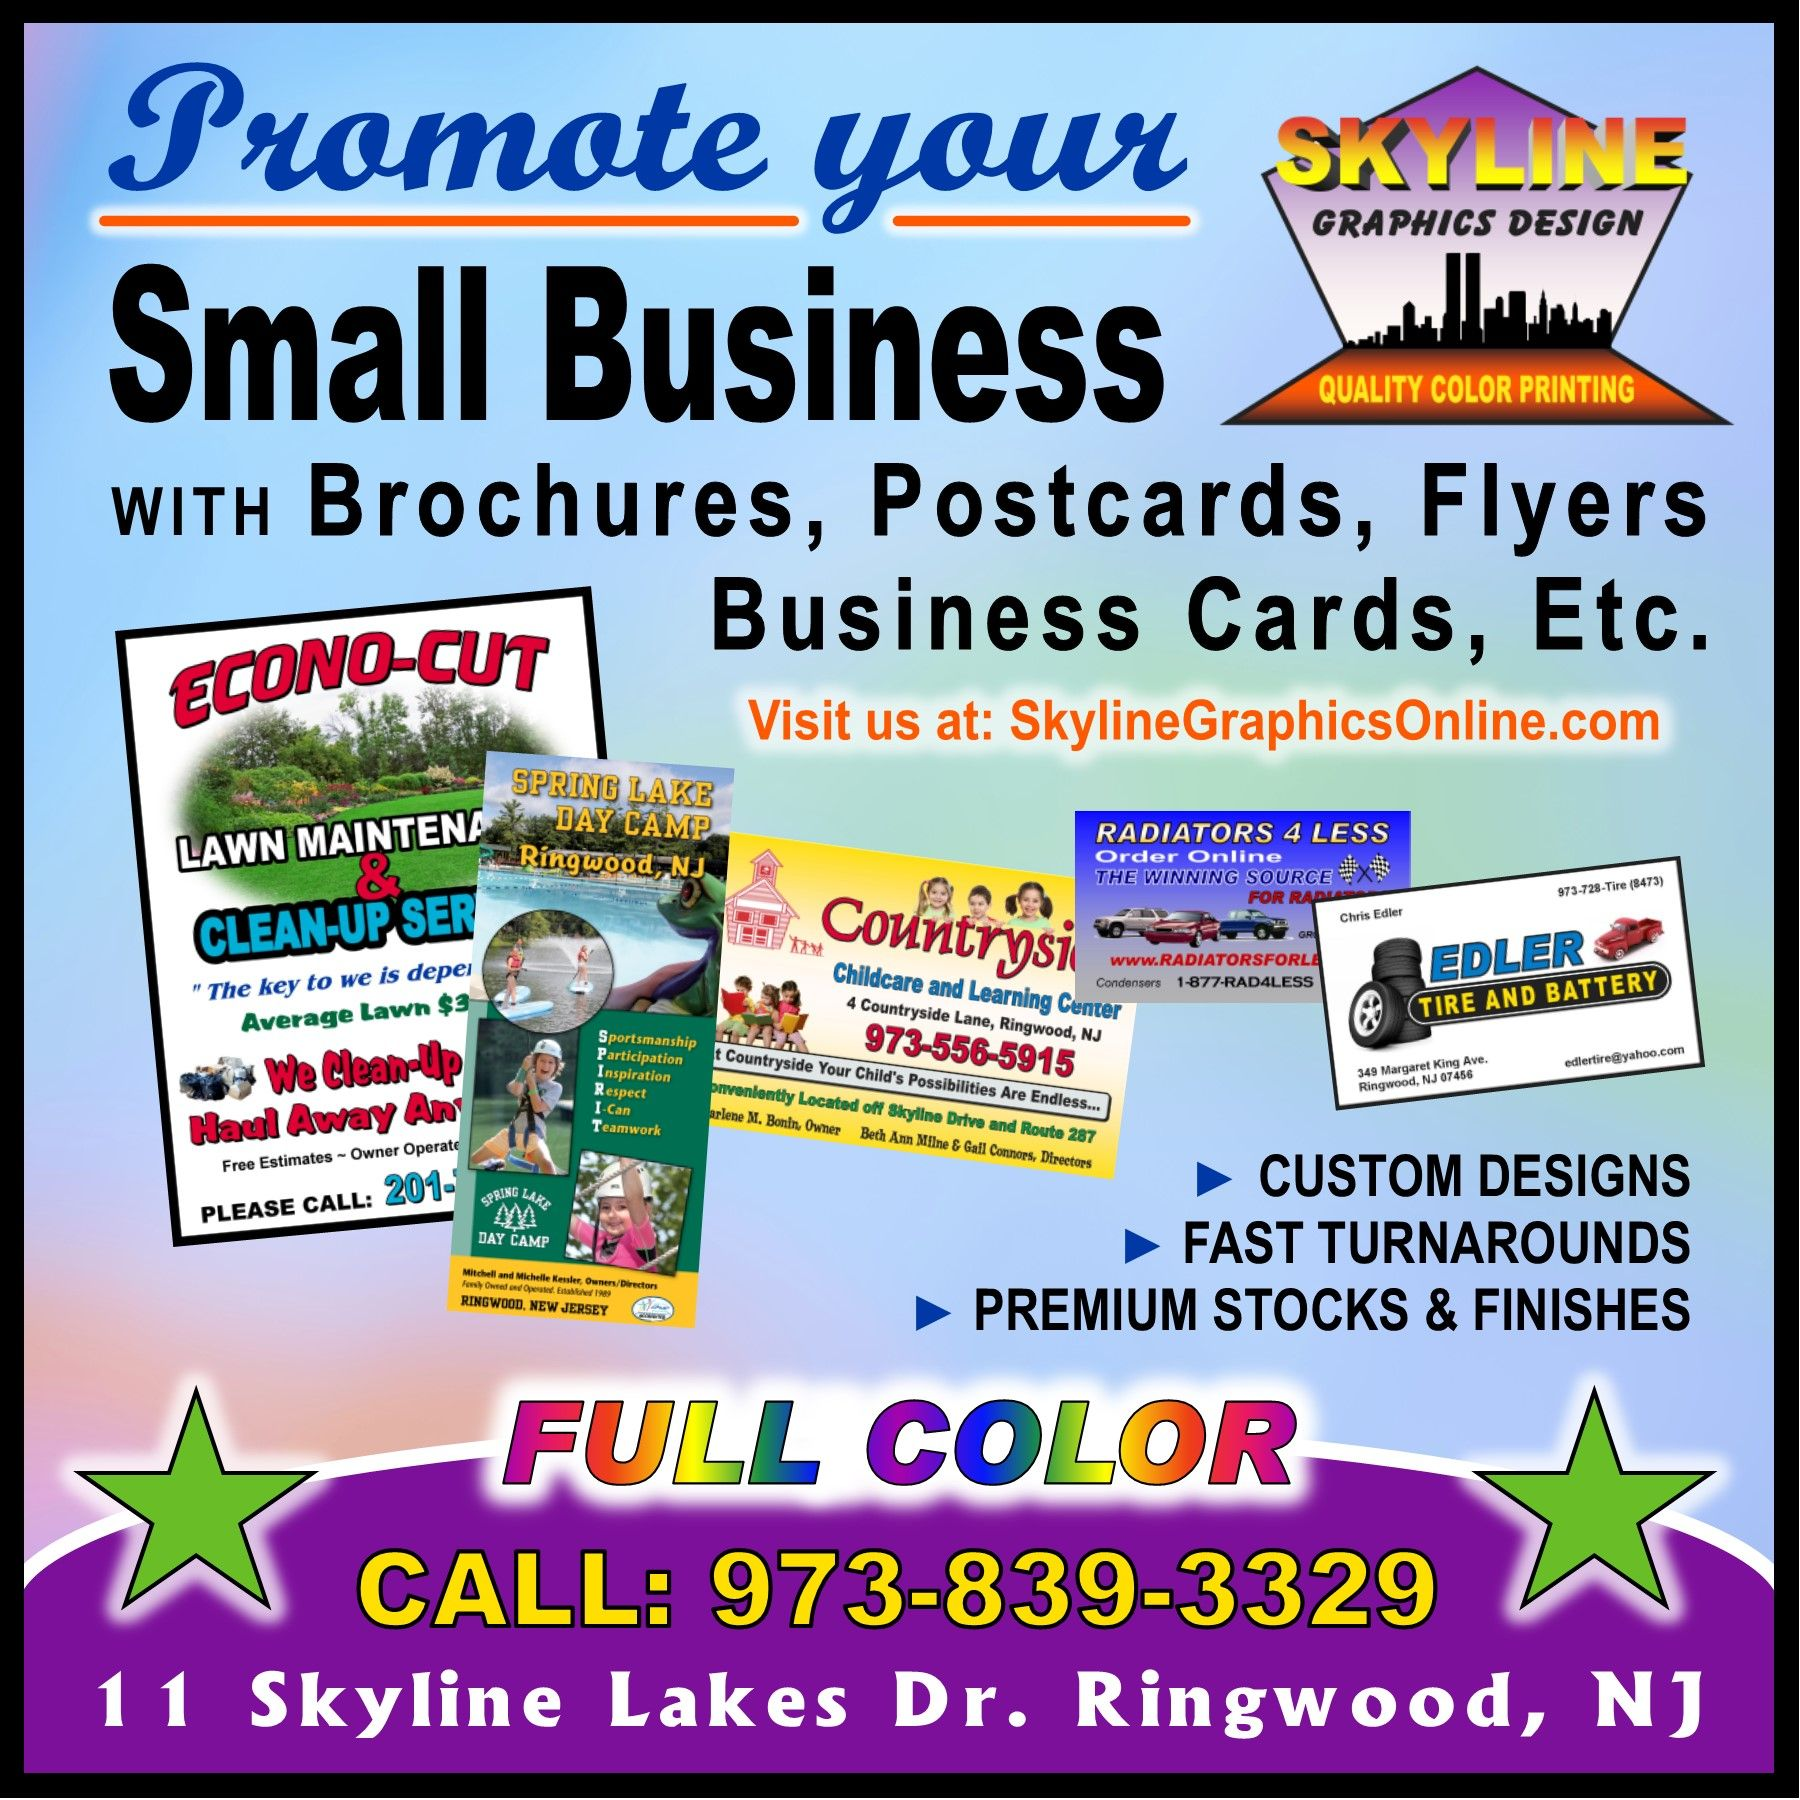 Promoting Small Businesses Brochures Postcards Flyers Business Cards Printing Services Promote Small Business Small Designs